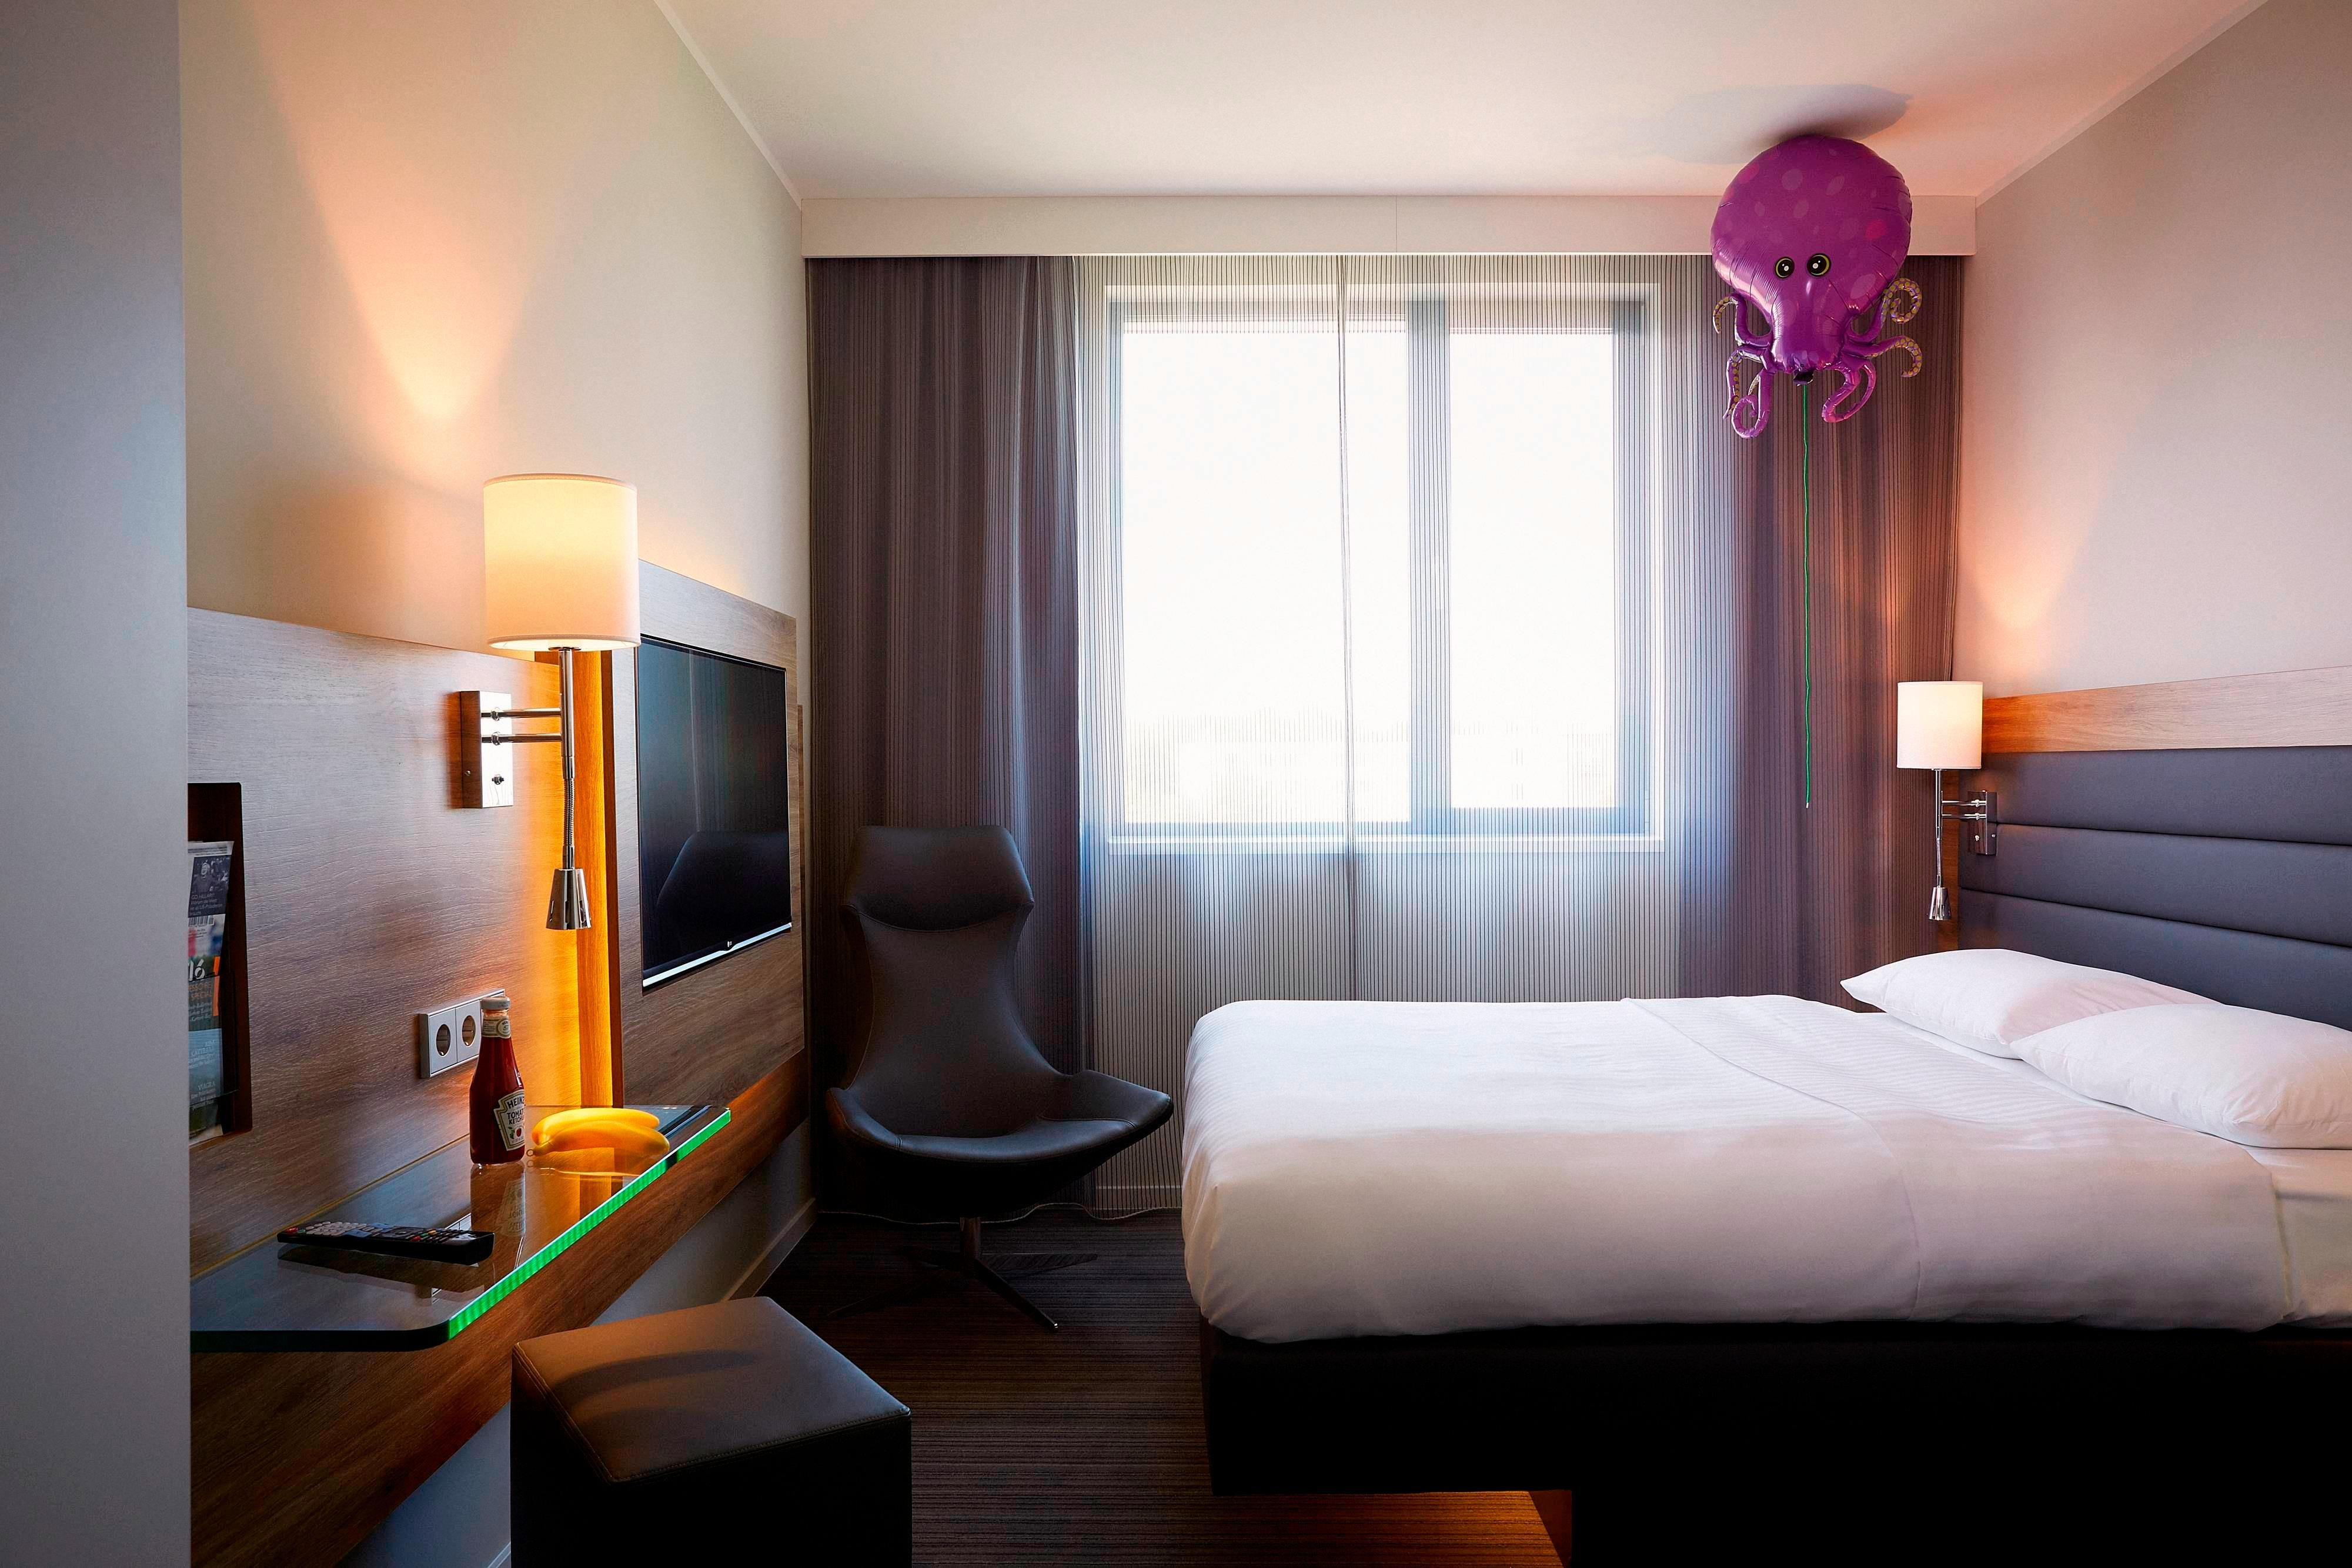 moxy m nchen airport hotel annehmlichkeiten hotelzimmer highlights. Black Bedroom Furniture Sets. Home Design Ideas